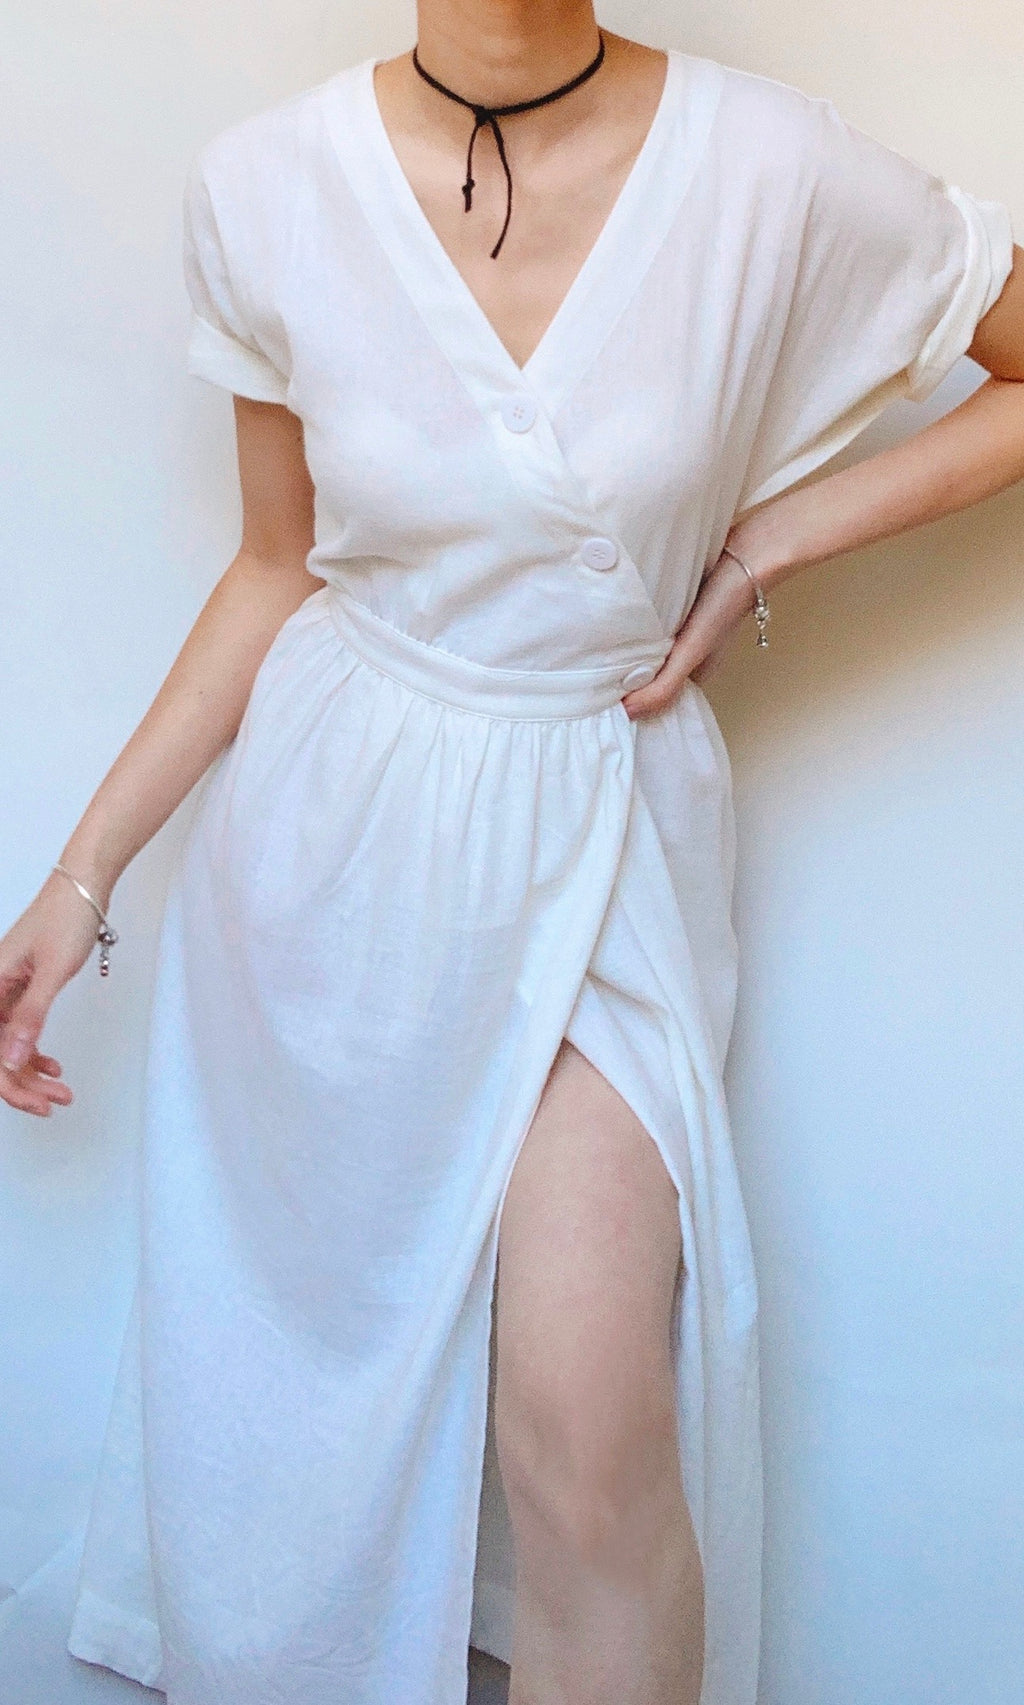 MORNING DEW LINEN MIDI DRESS WITH SIDE POCKETS IN WHITE - Koogal